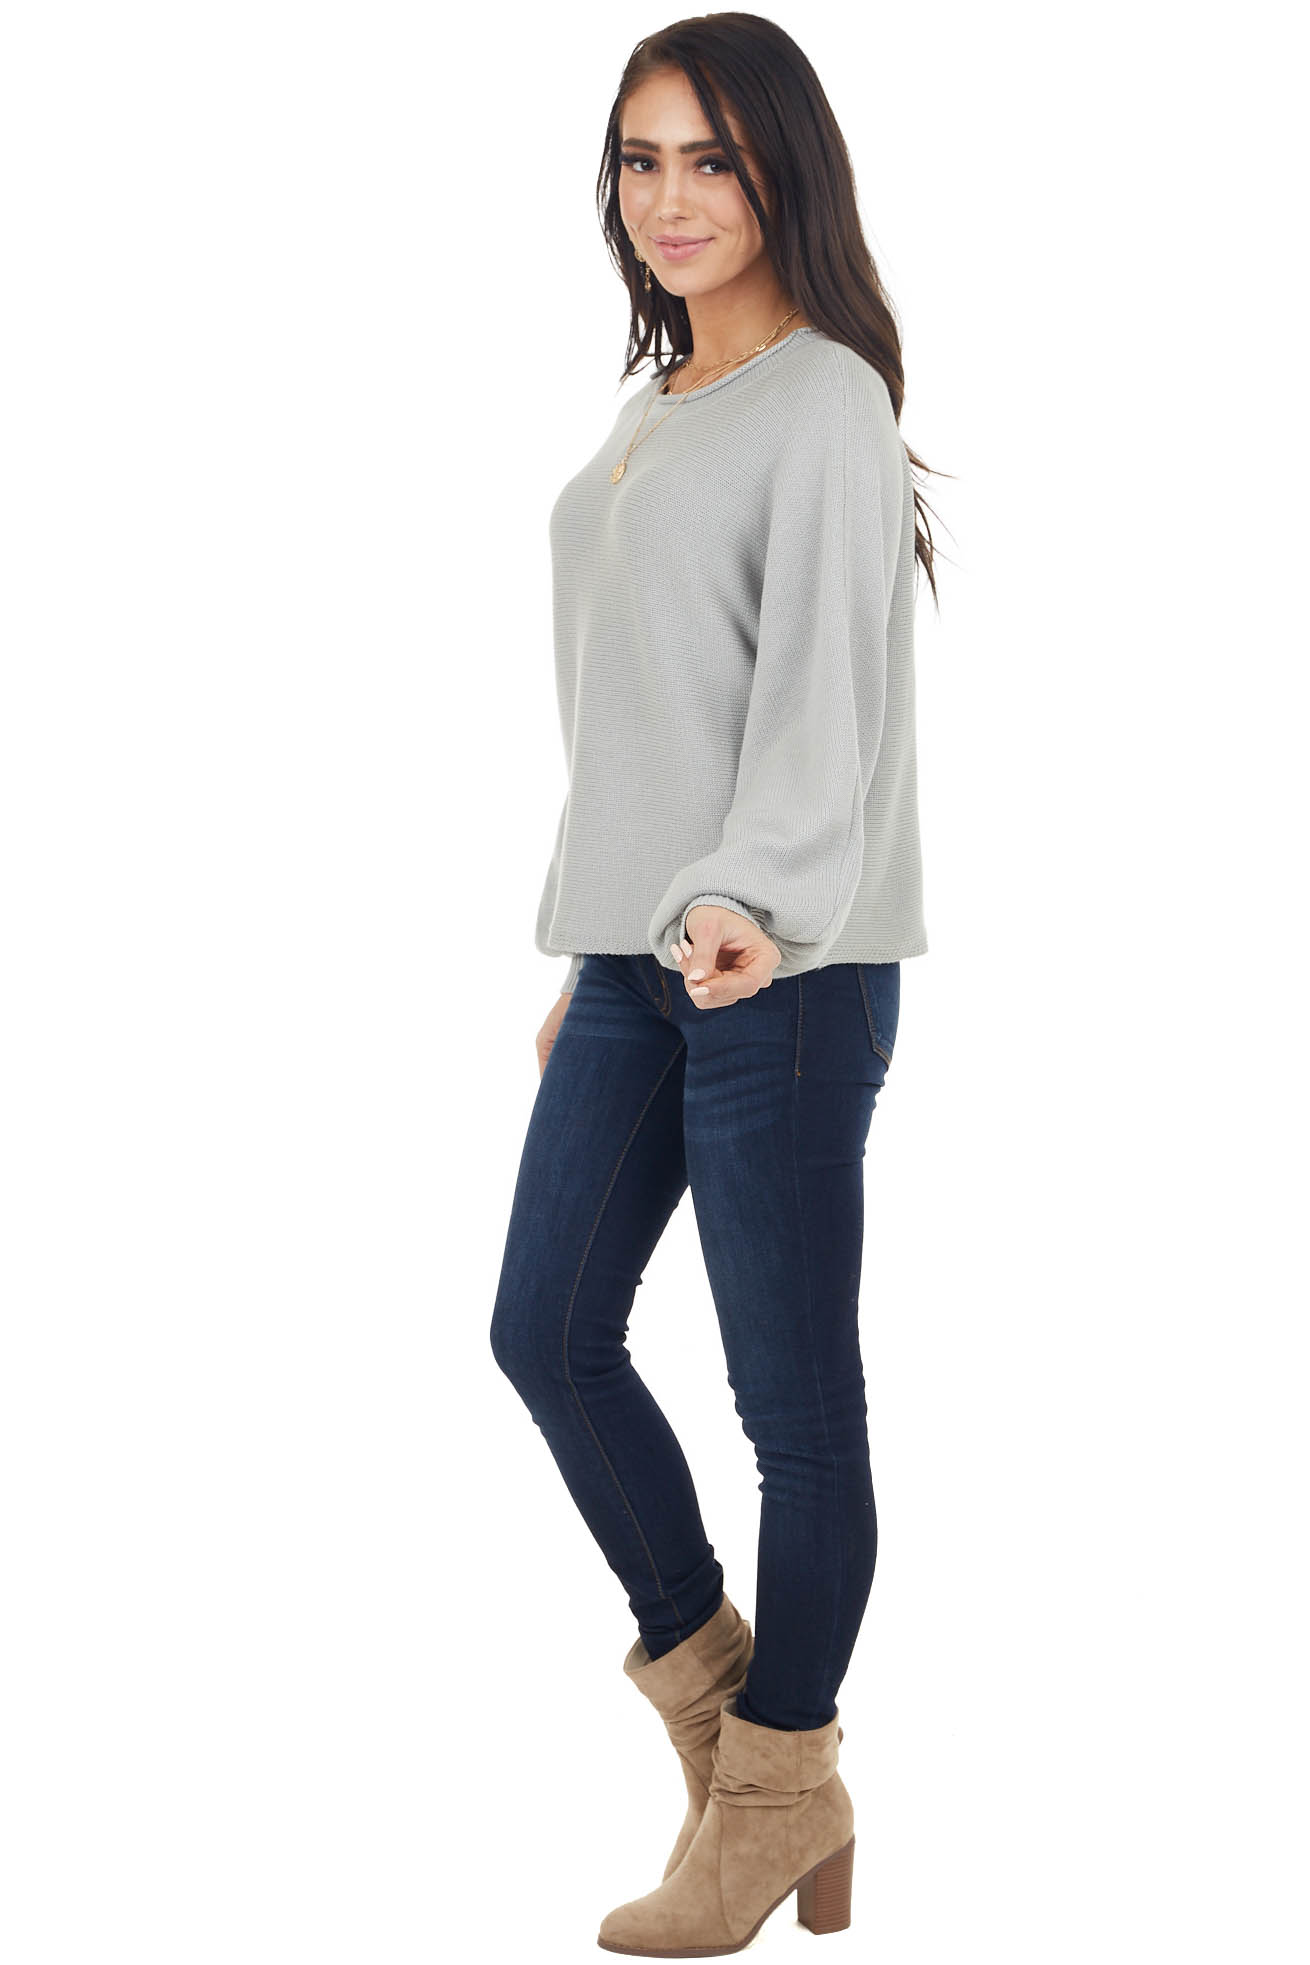 Dove Grey Bubble Sleeve Knit Sweater with Rolled Neckline